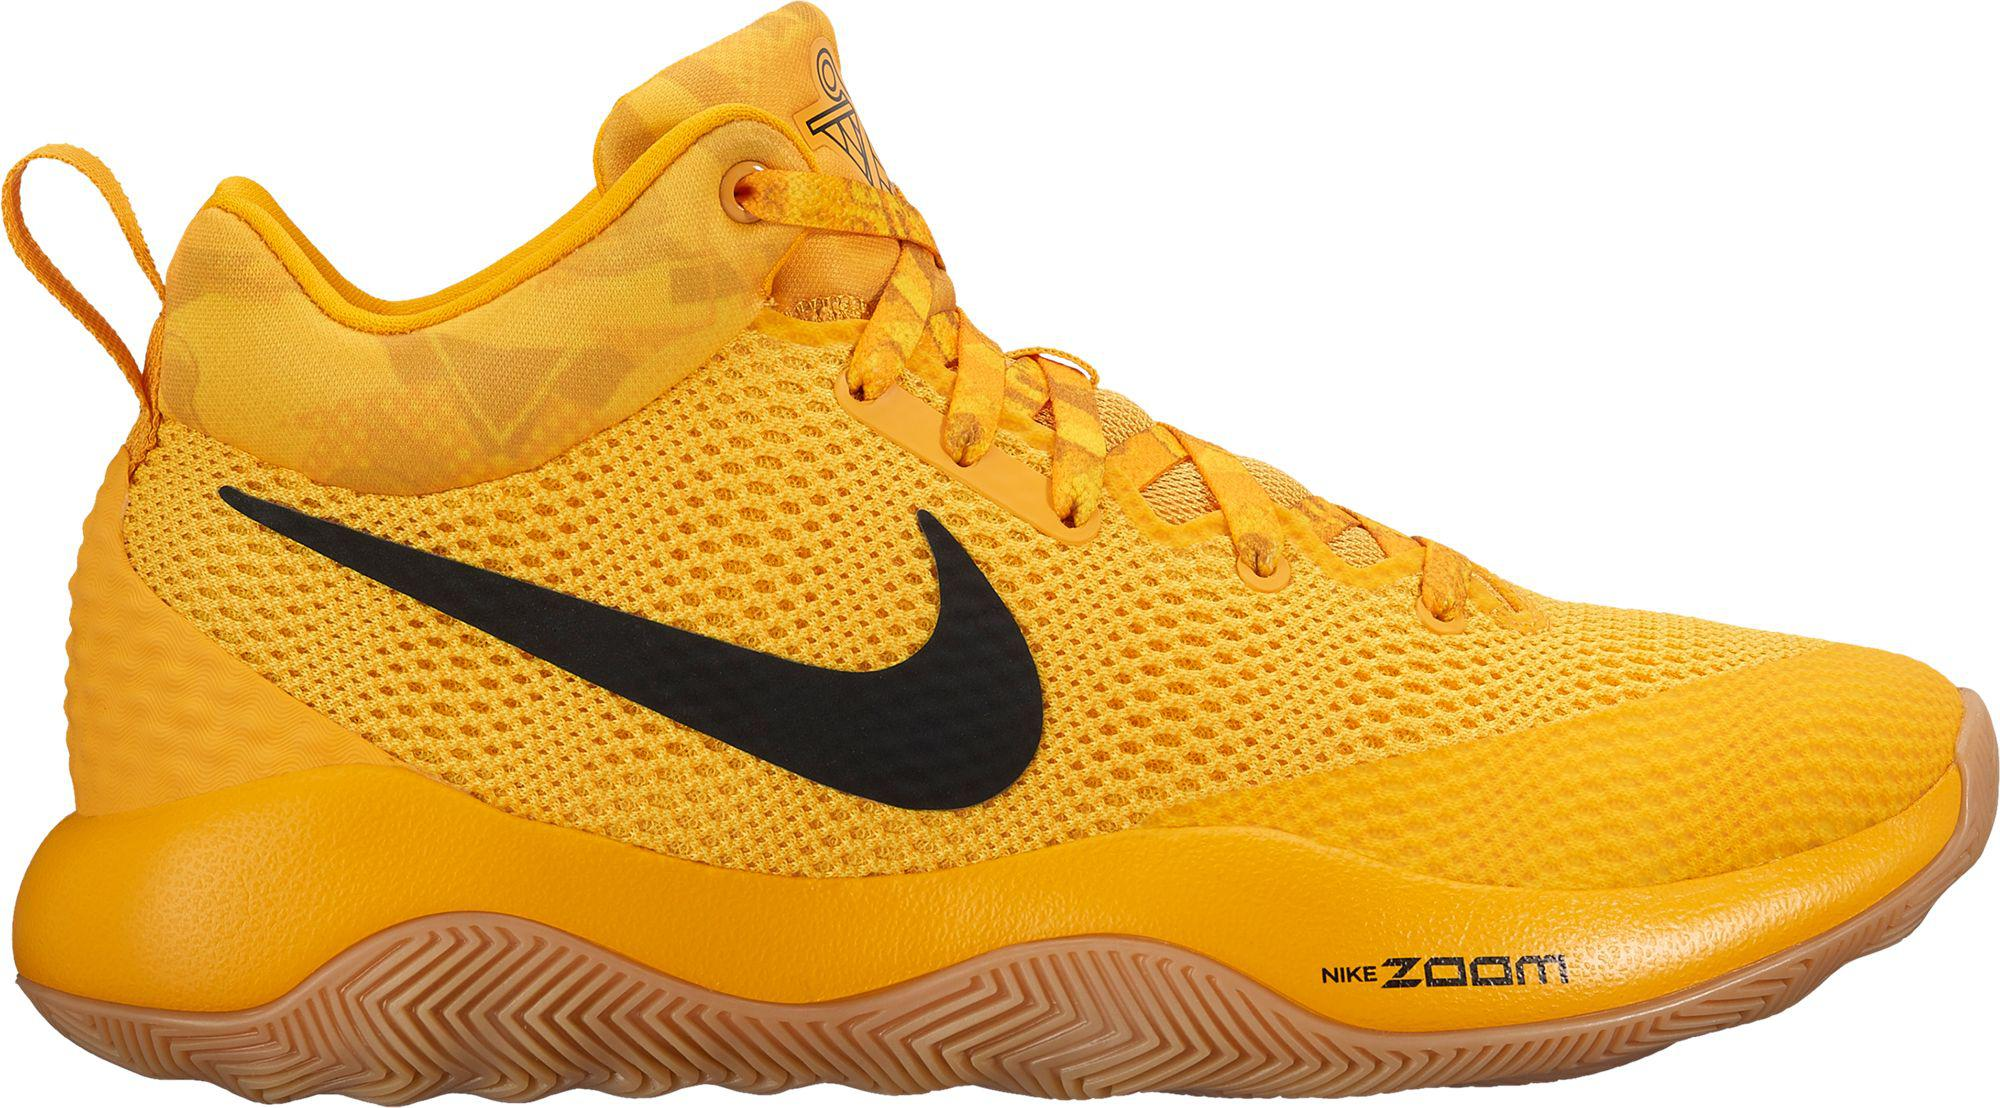 b755521f118b Lyst - Nike Zoom Rev 2017 Basketball Shoes in Yellow for Men